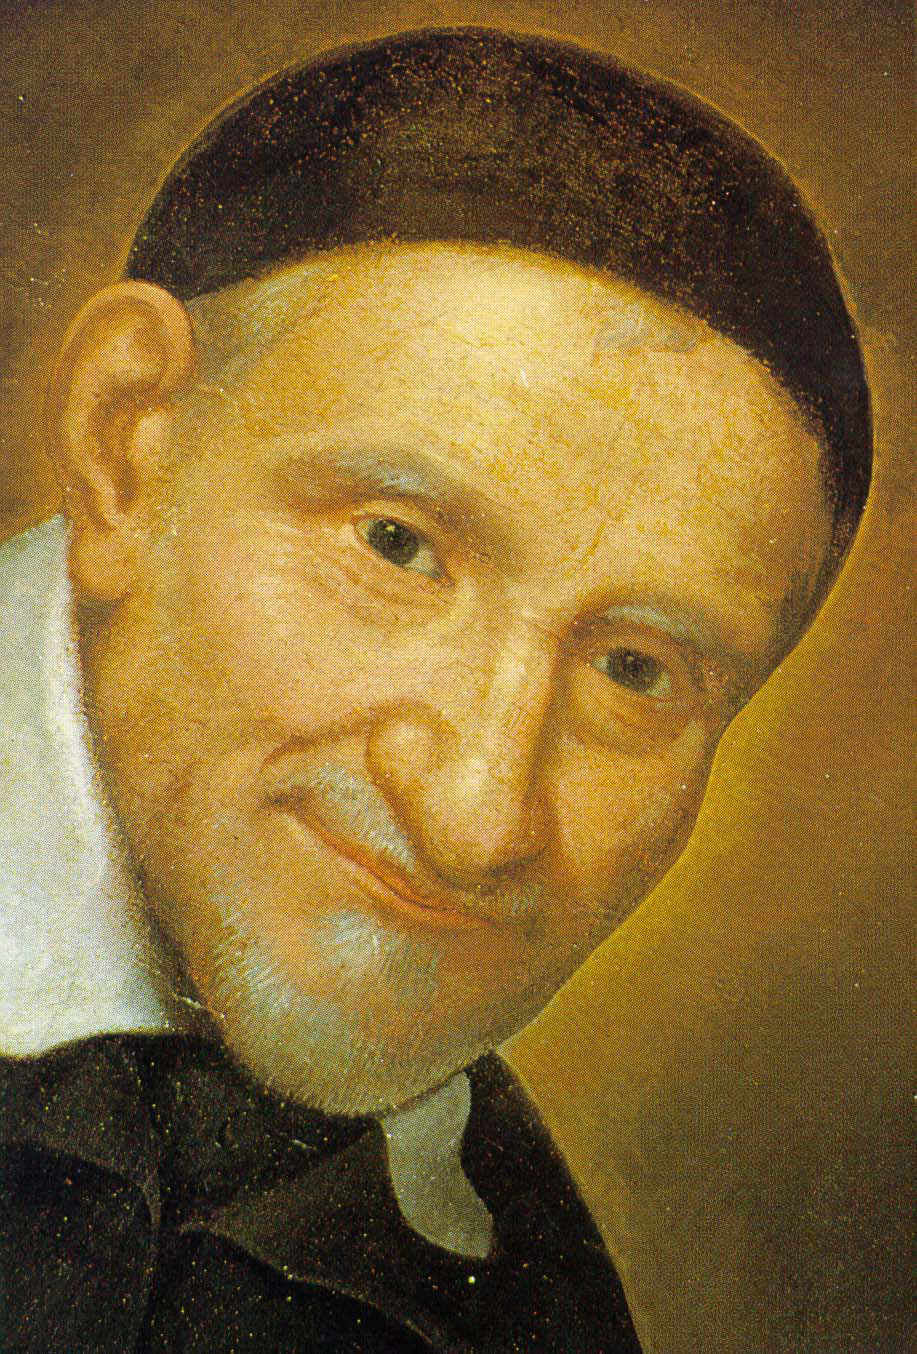 life of saint vincent de paul Vincent de paul [c 1581 - 1660] was a man renowned during his own century for his compassion, humility and generosity during the days when galleys were part of any.